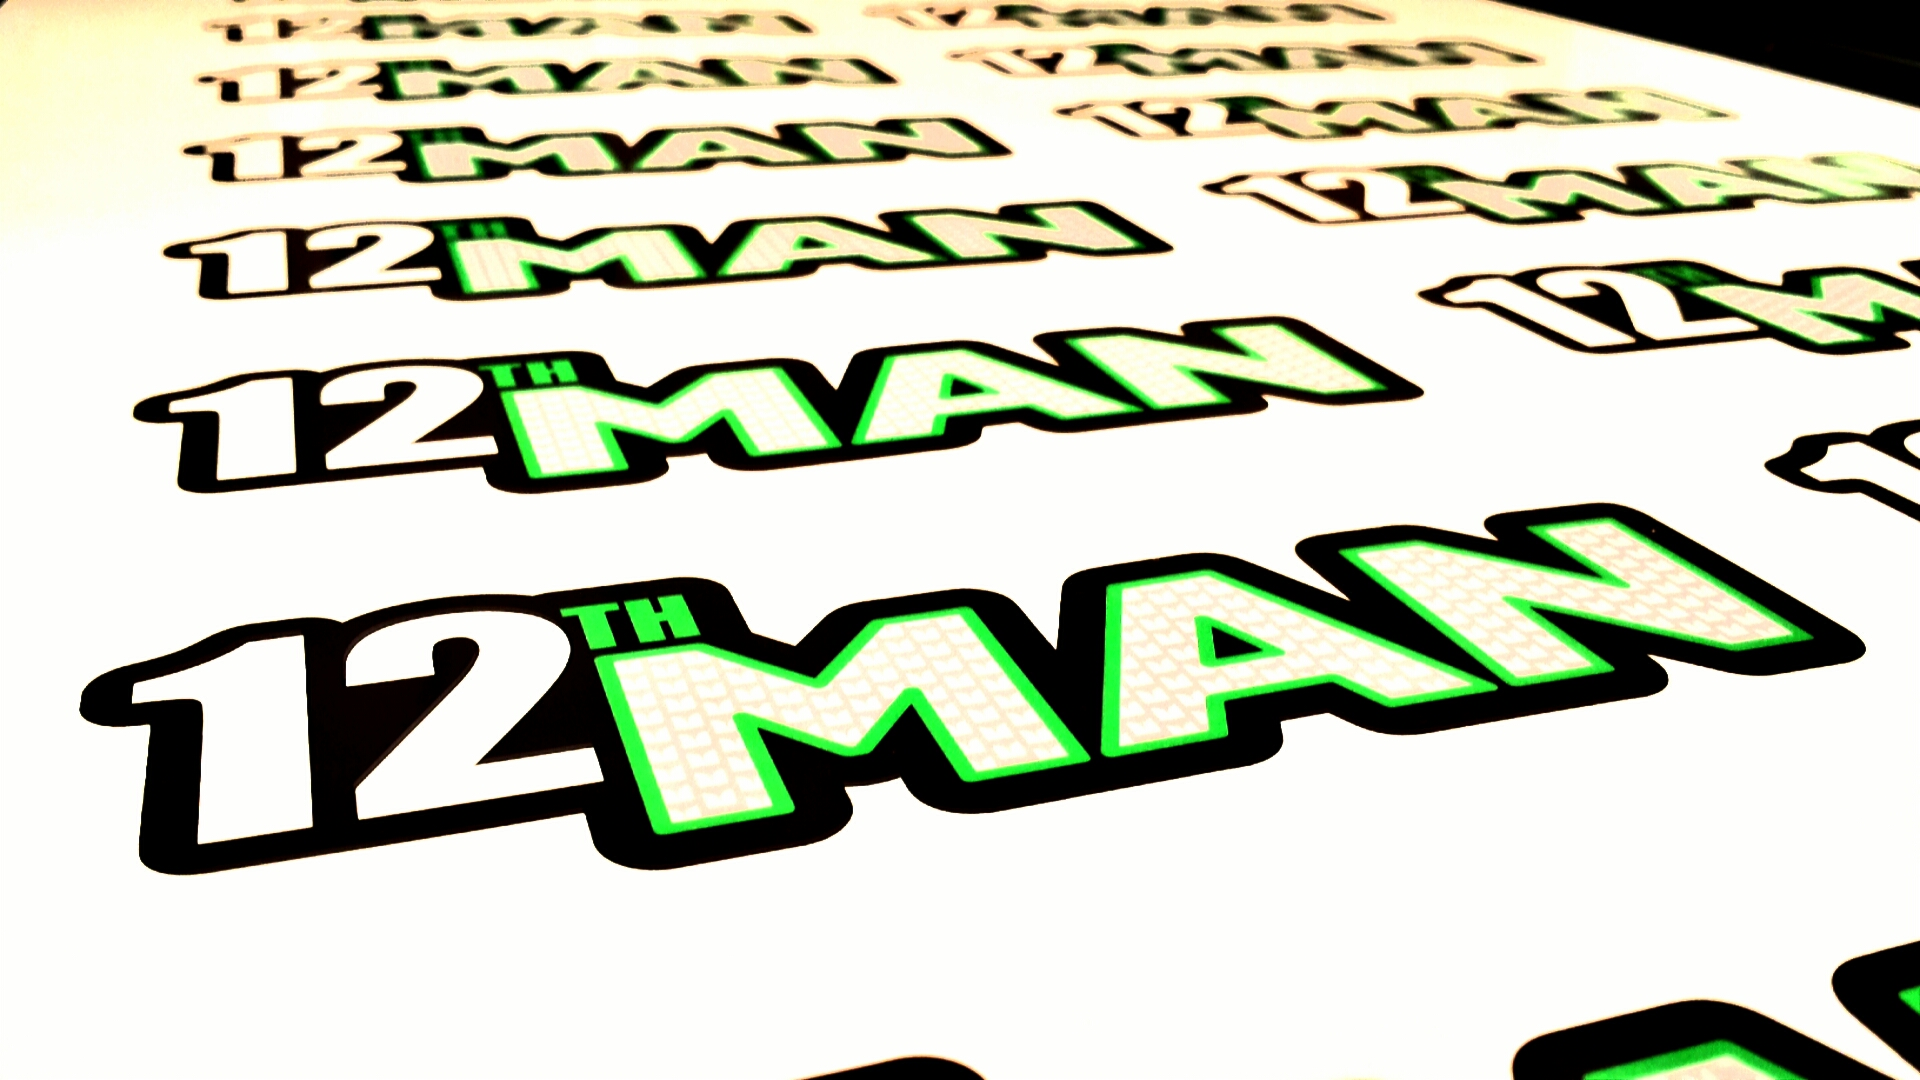 12th man stickers